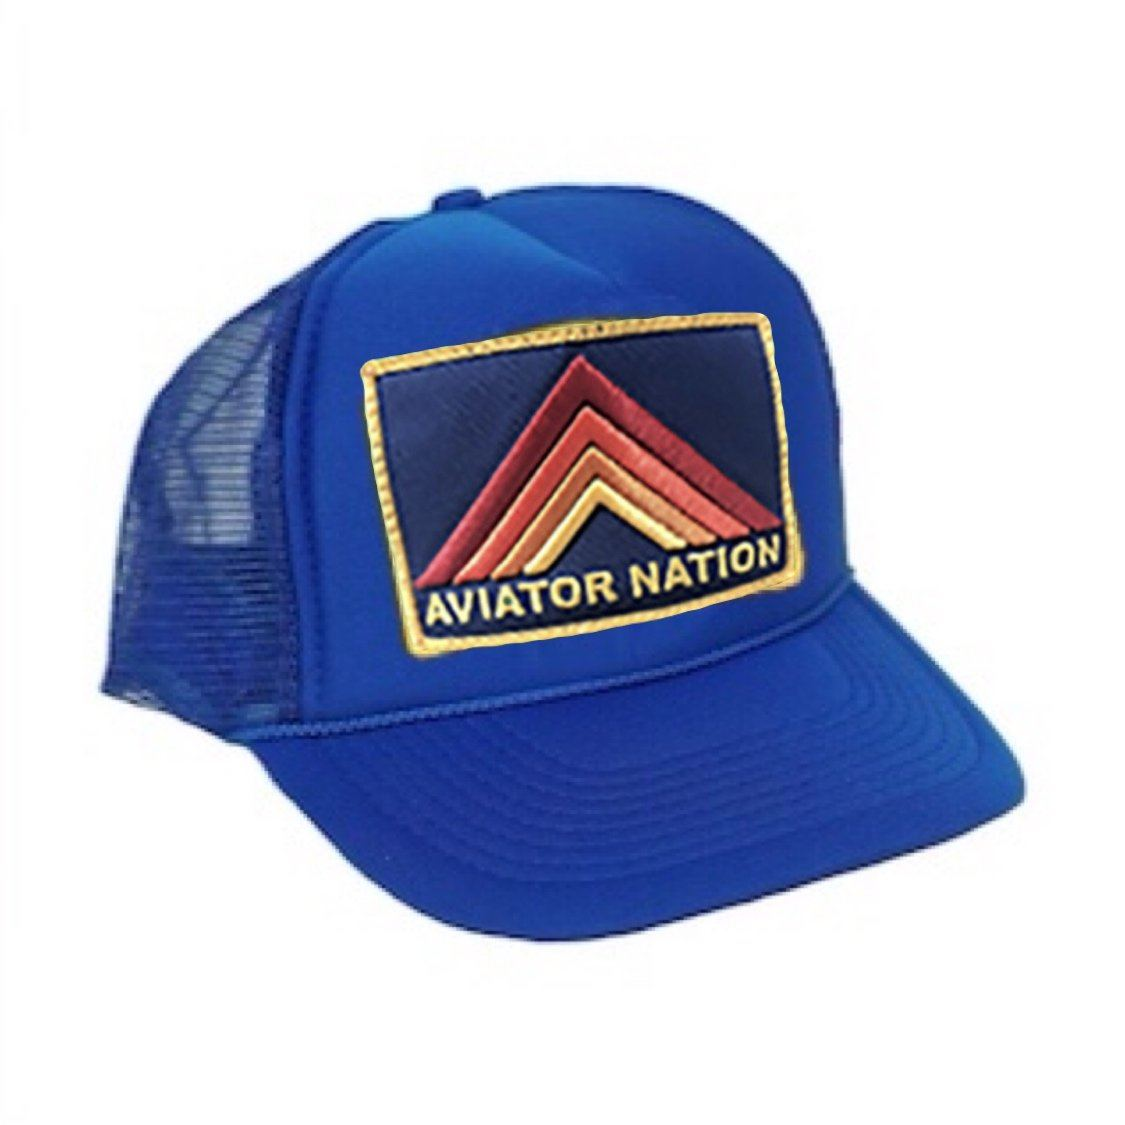 Aviator Nation - Kids Royal Blue Mountain Stripe Vintage Trucker Hat hat Aviator Nation